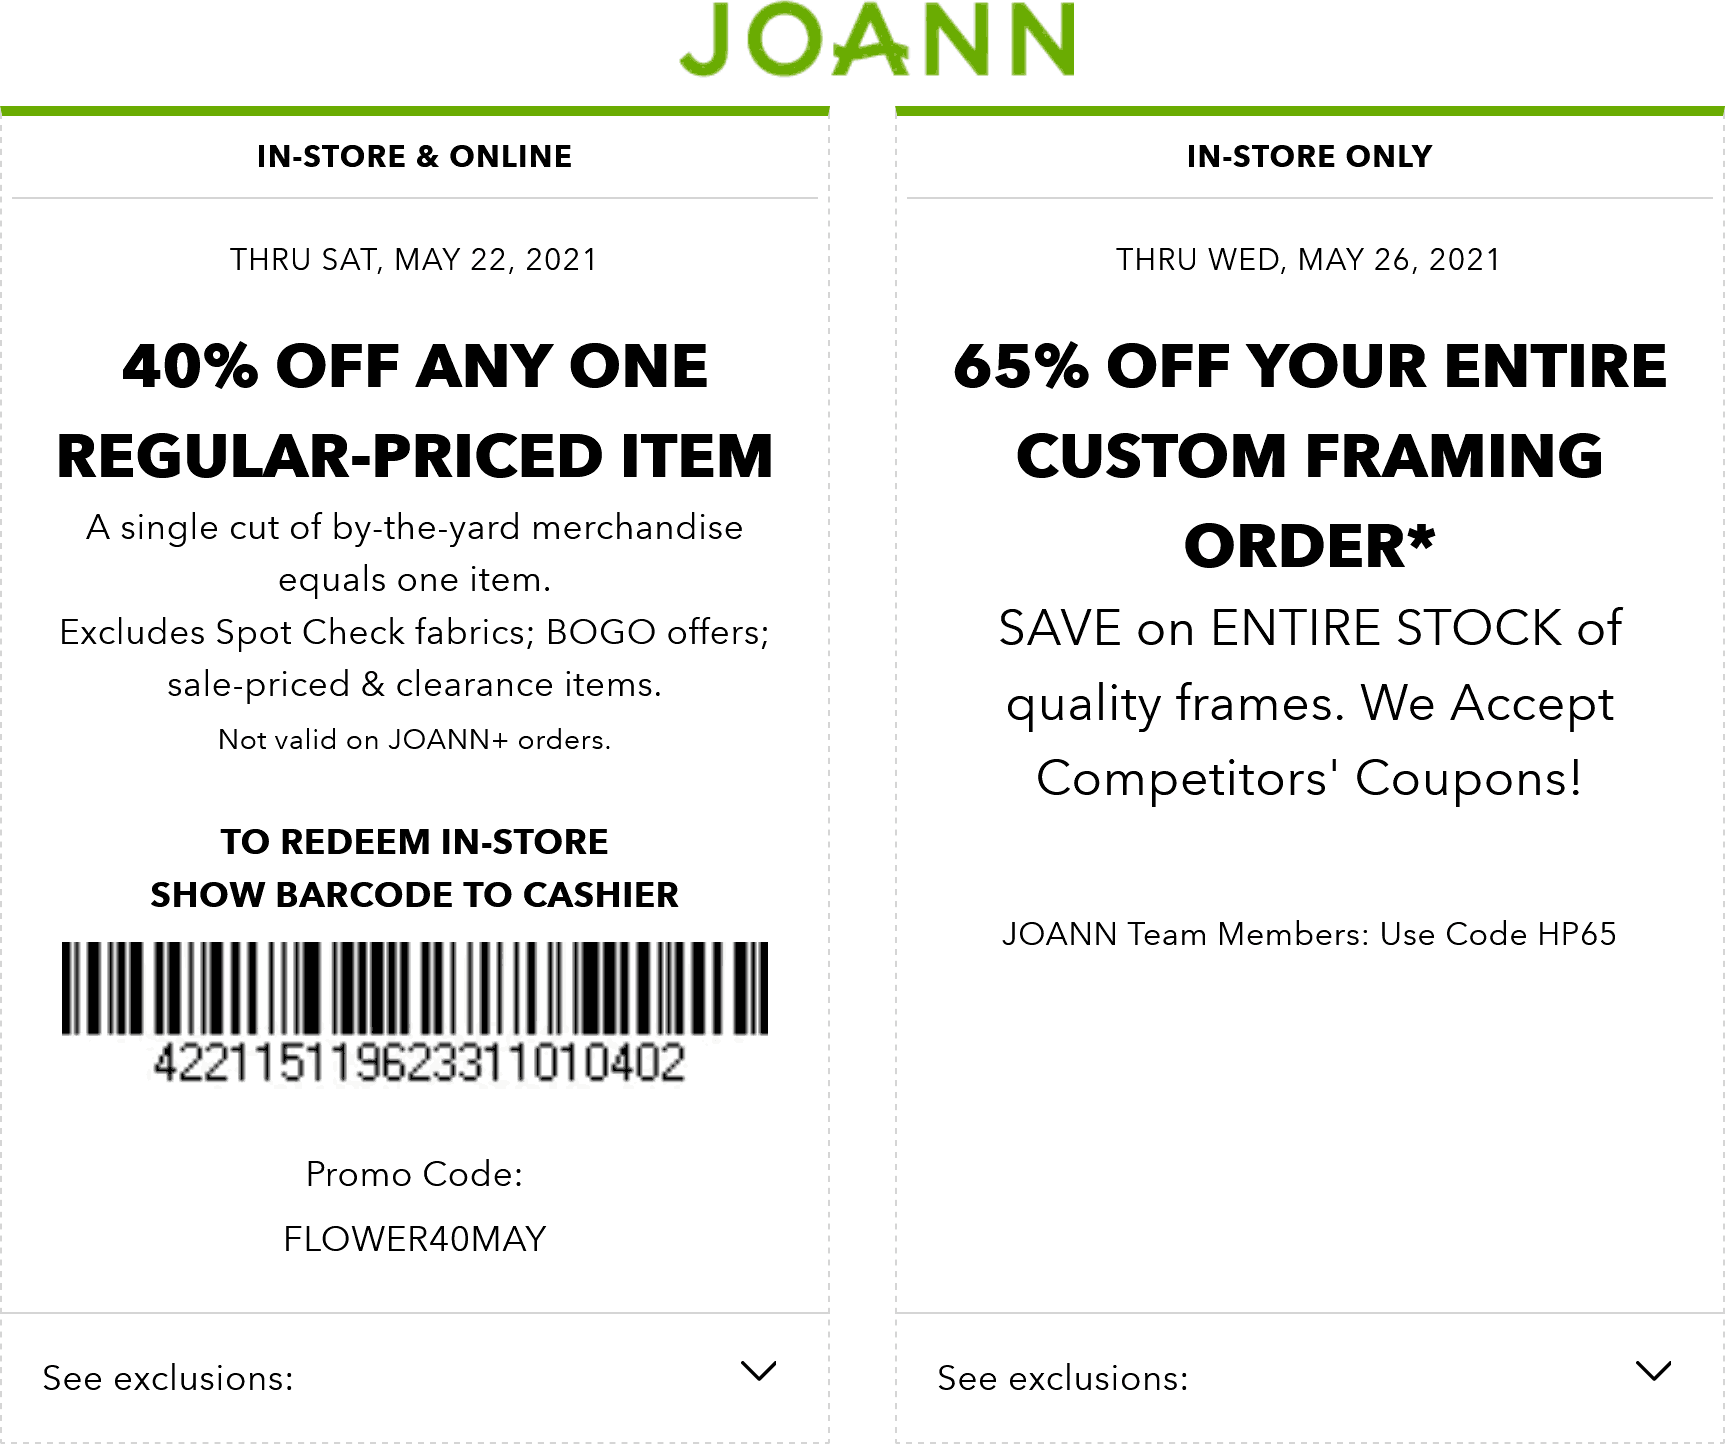 Joann stores Coupon  40% off a single item at Joann, or online via promo code FLOWER40MAY #joann